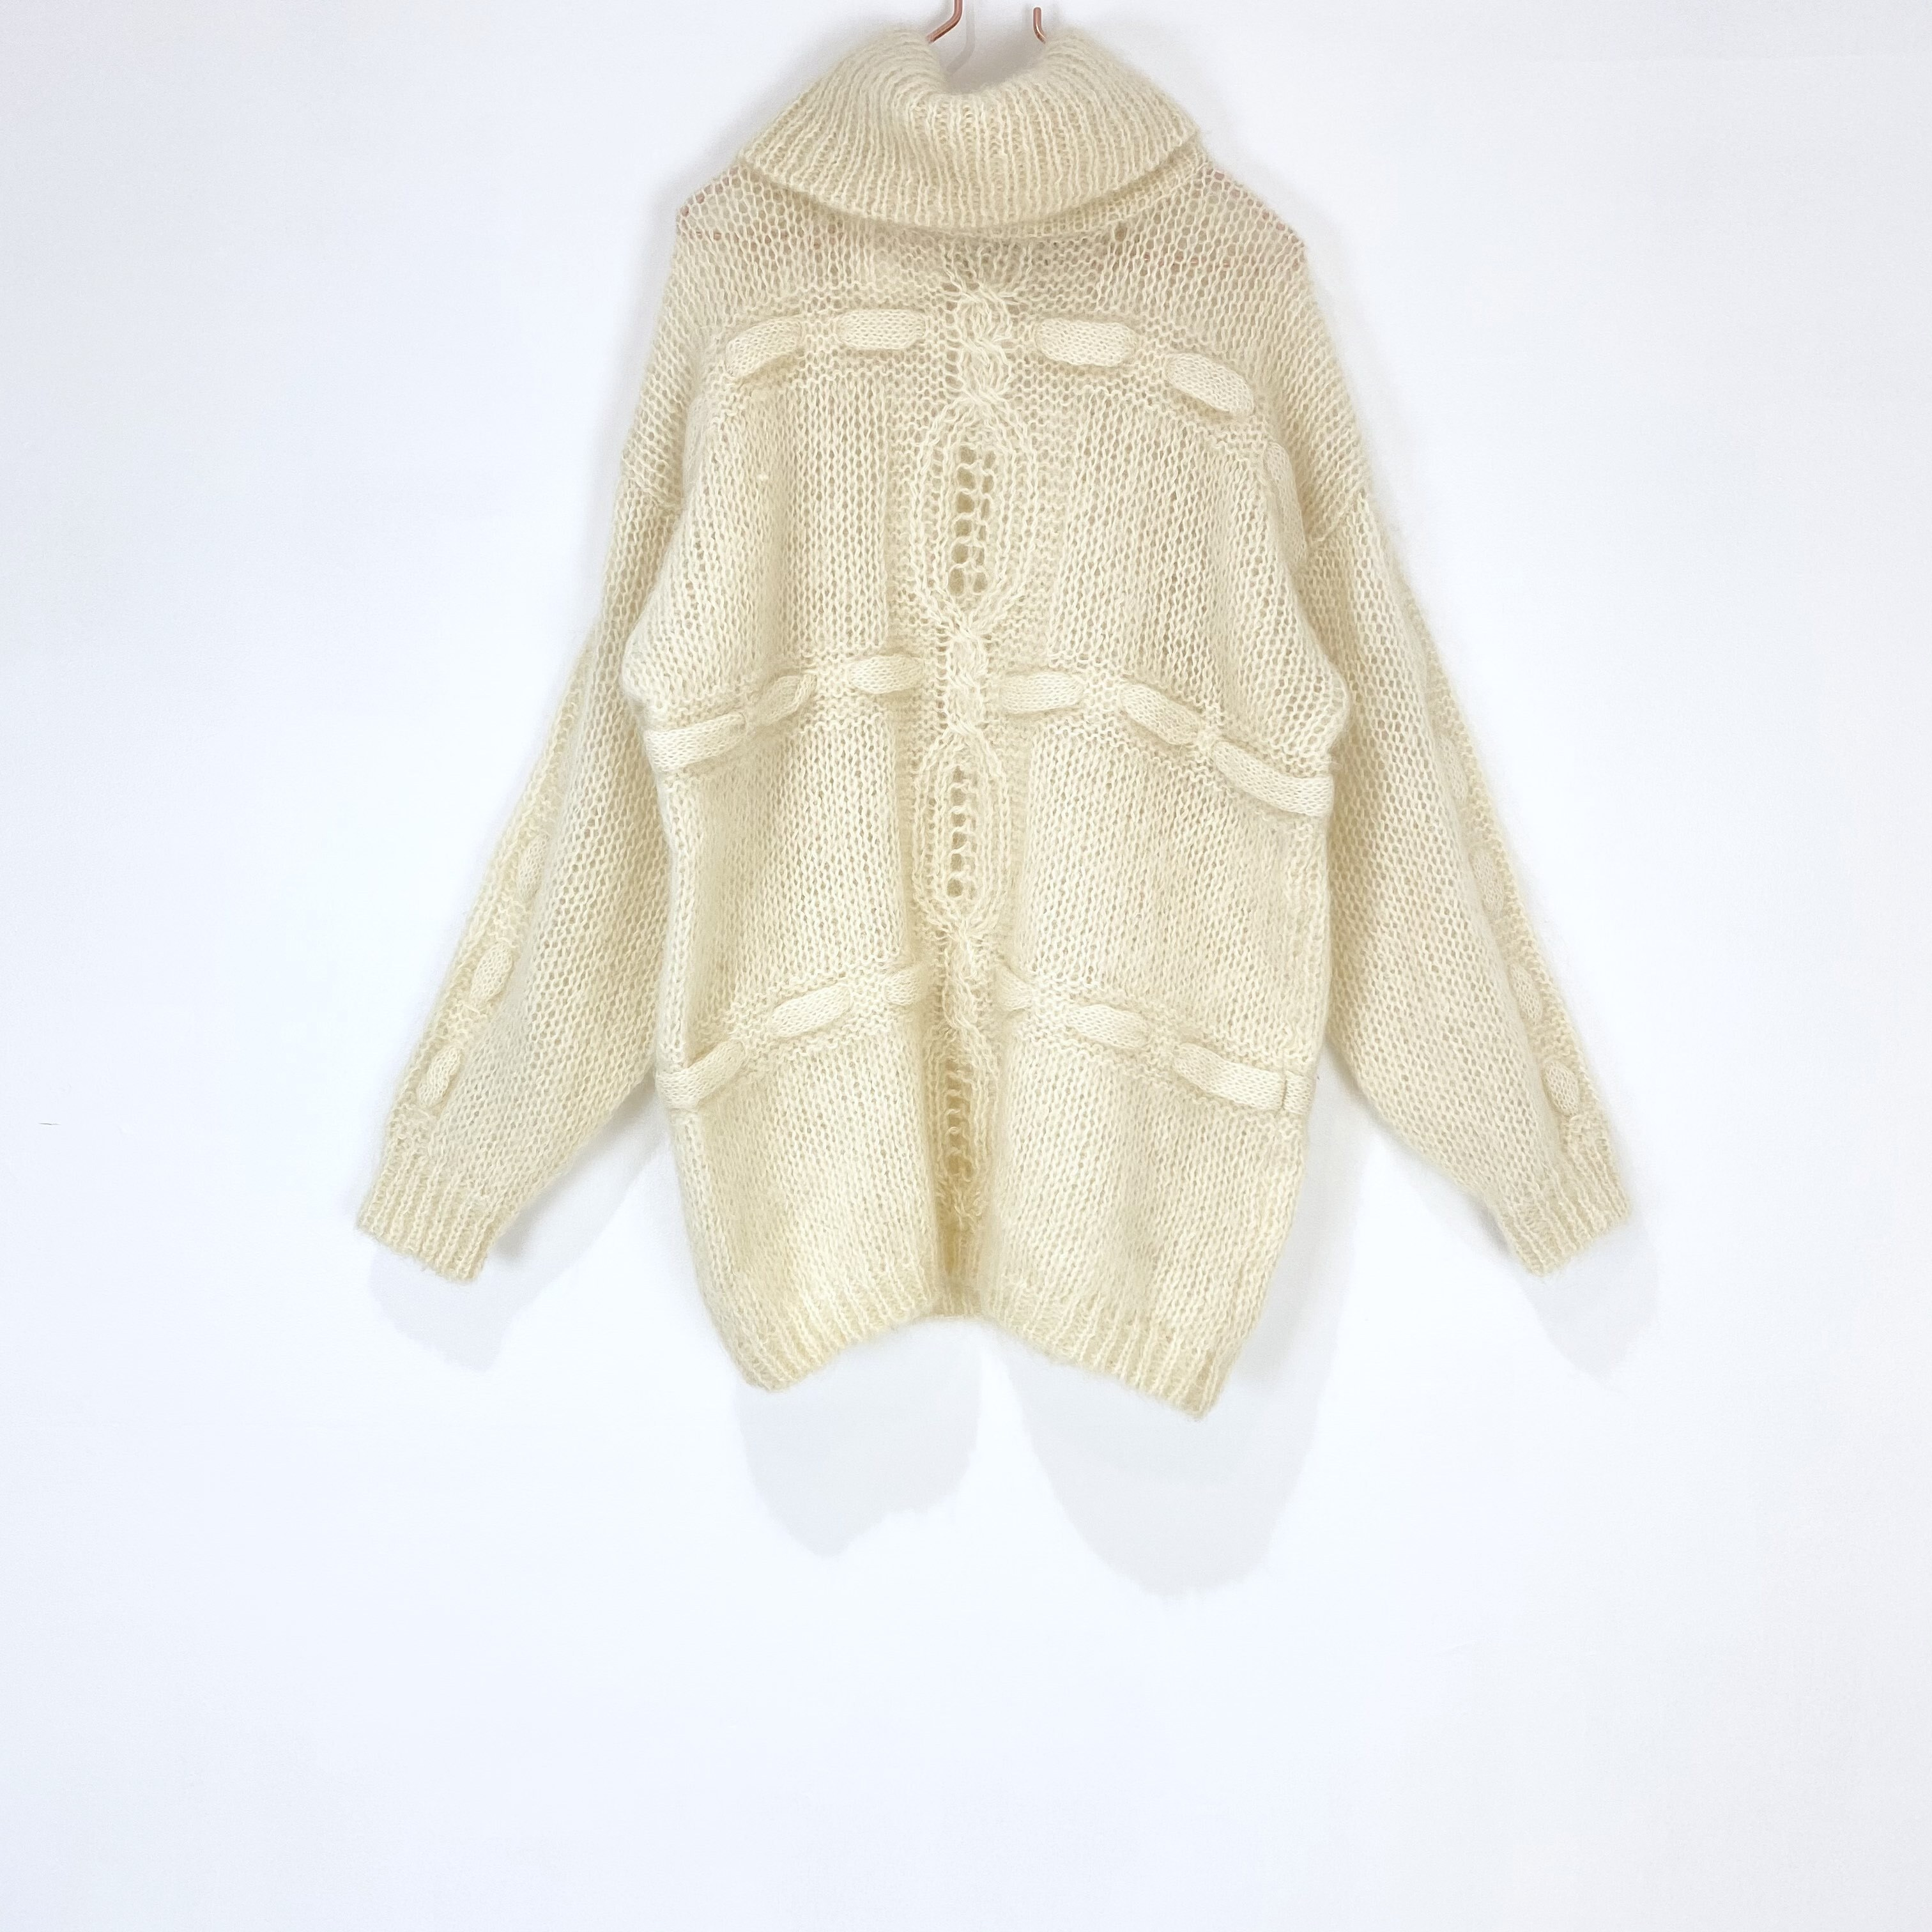 ◼︎90s mohair × wool cable knitting sweater from U.S.A.◼︎